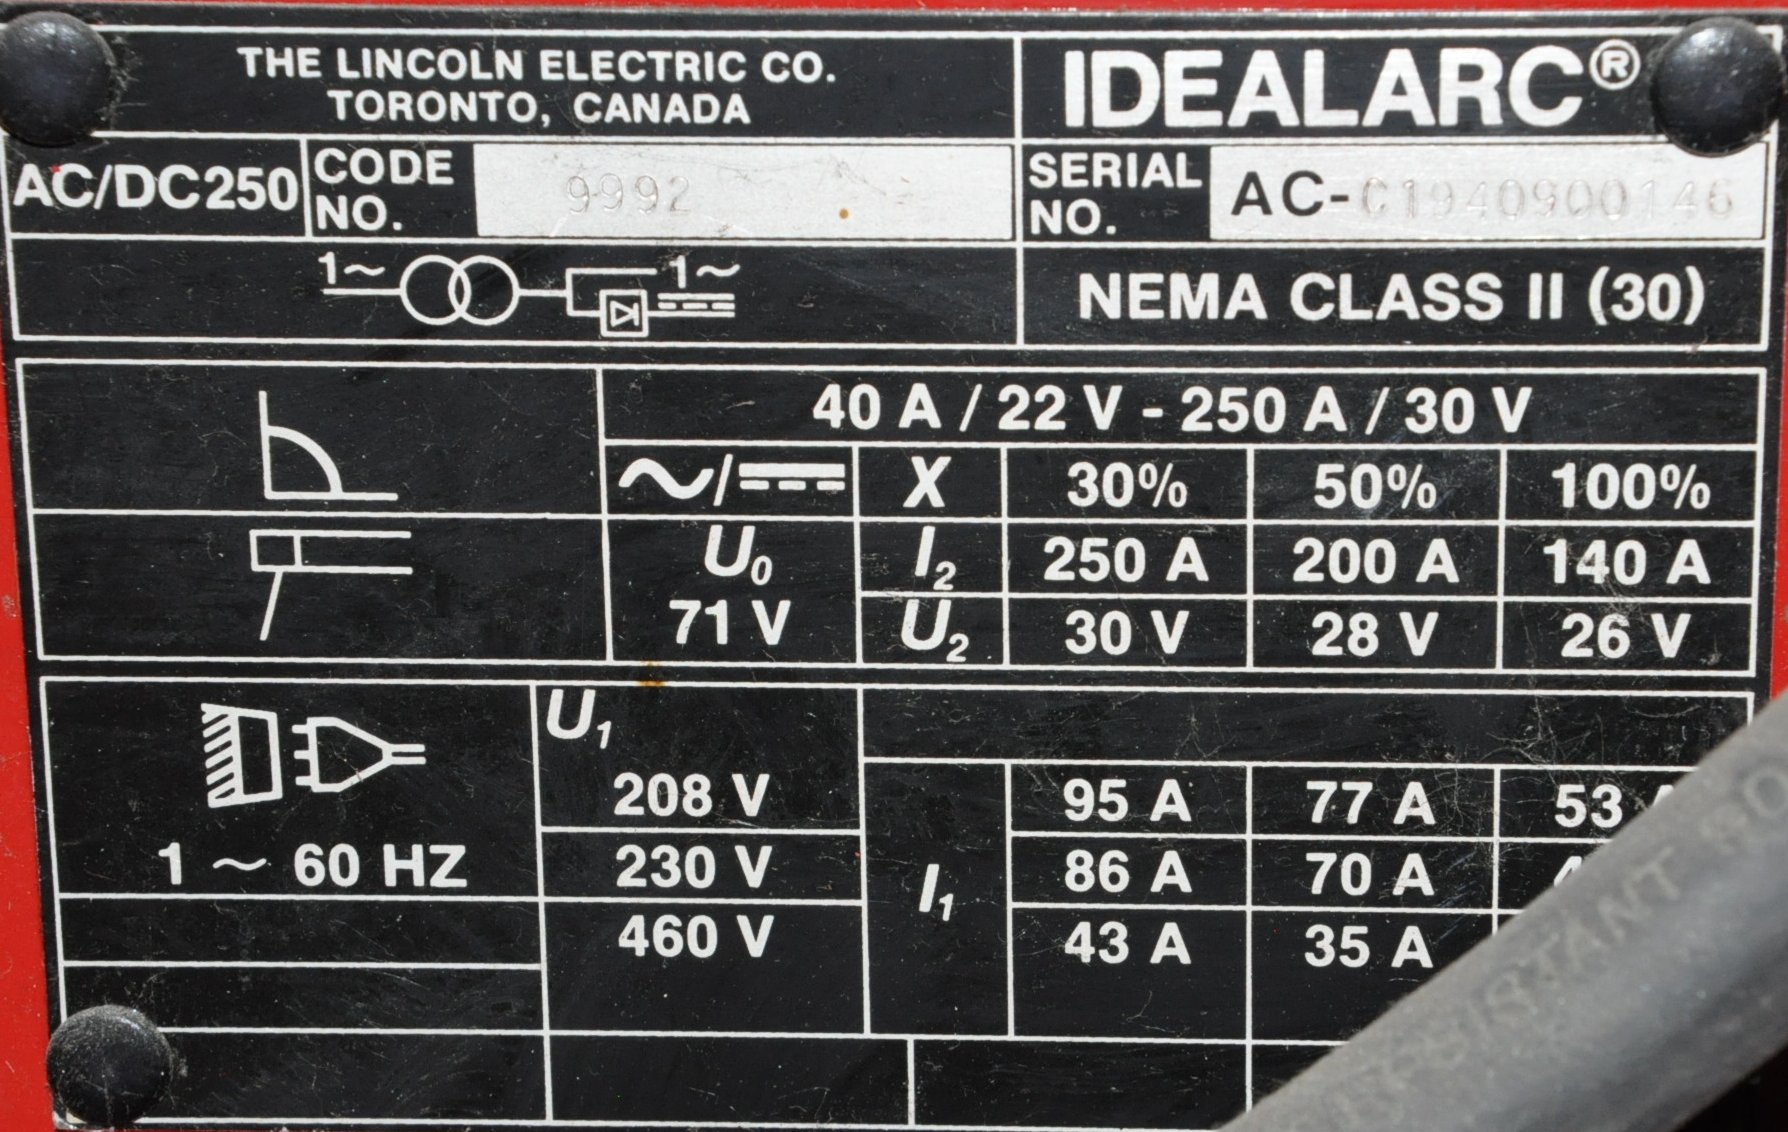 Lincoln Idealarc 250, 250-Amp Capacity CC AC/DC Arc Welder, - Image 2 of 2